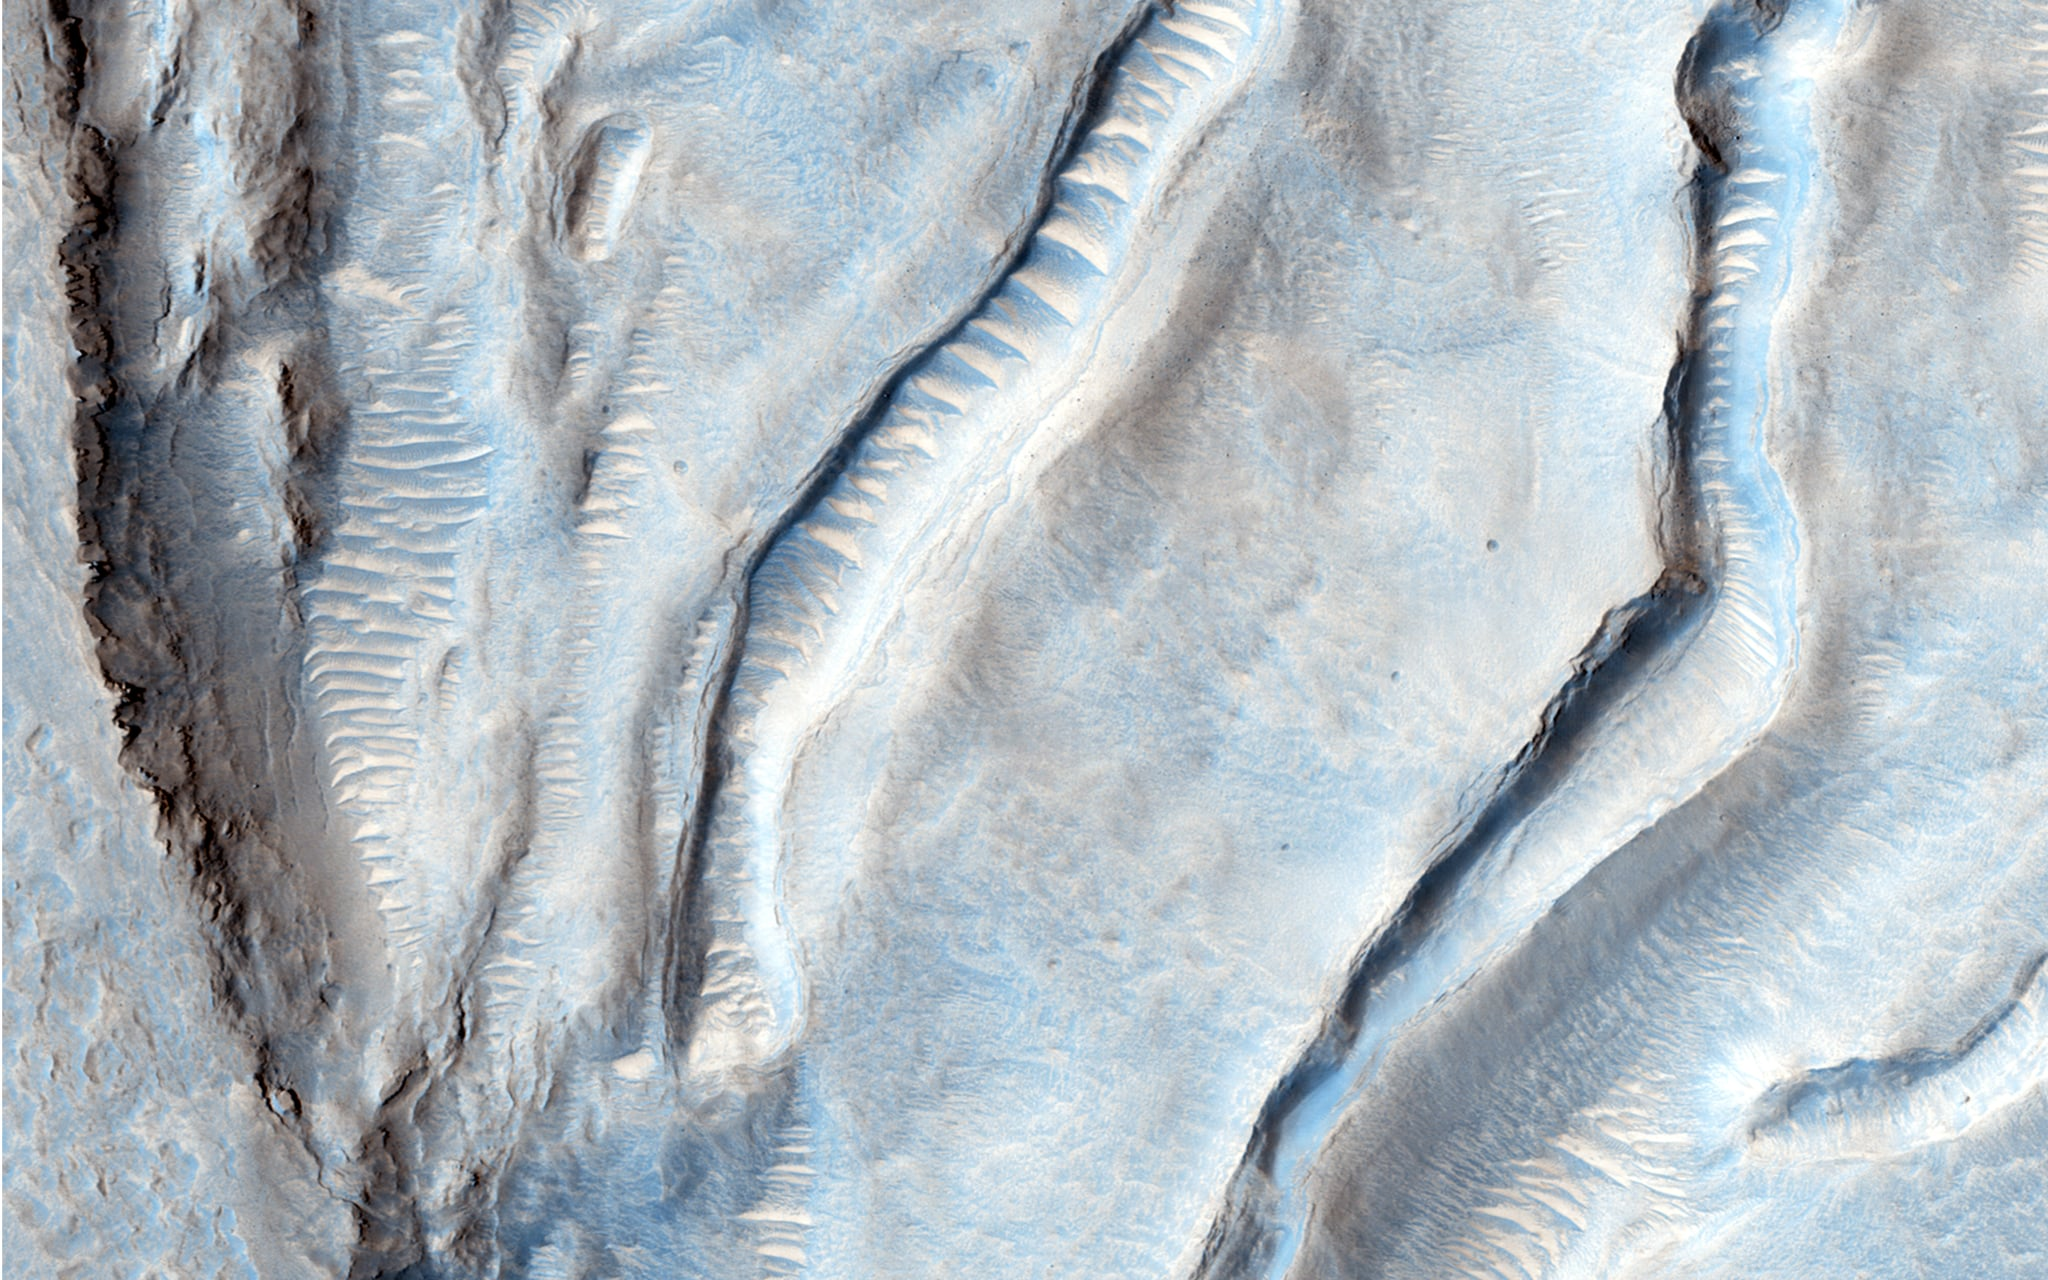 """""""Oxus Patera is an ancient, eroded depression in northern Arabia Terra. It is not known how Oxus Patera formed, though it has been suggested that the feature represents an ancient caldera formed through collapse and explosive volcanism."""" Source: NASA/JPL/University of Arizona"""